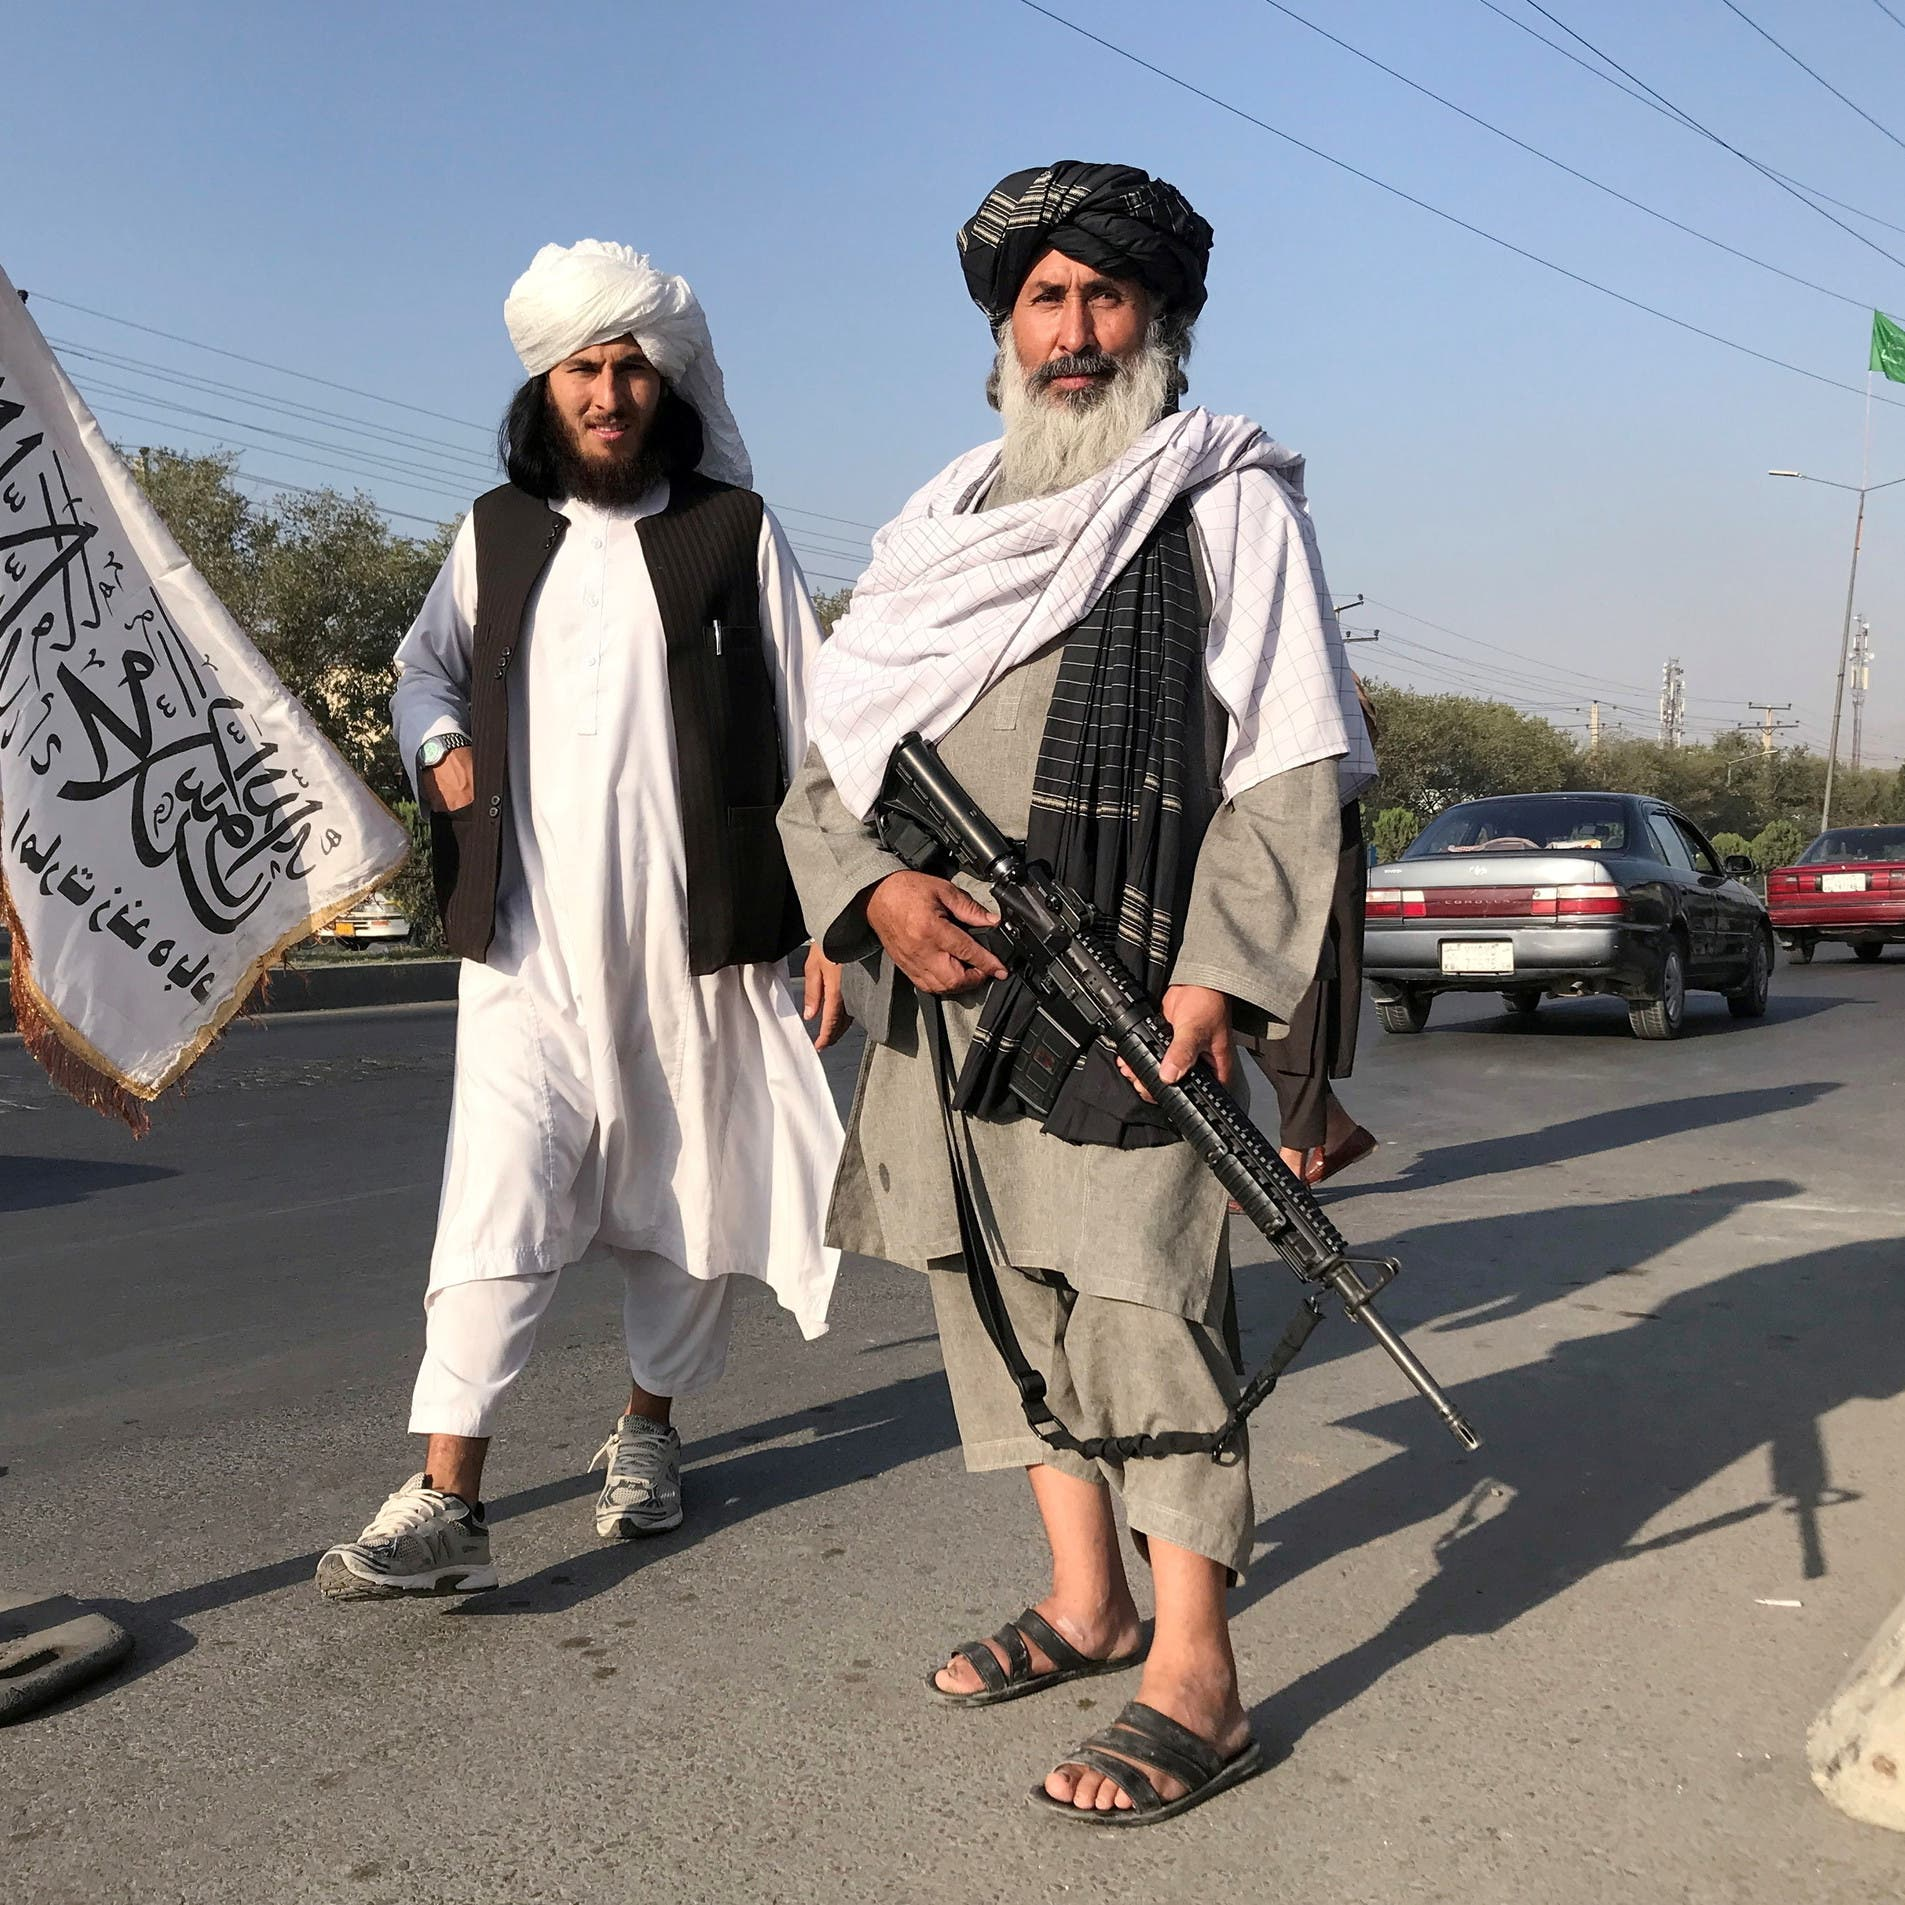 Taliban and al-Qaeda bonds remain strong, parting of ways unlikely: Analysts